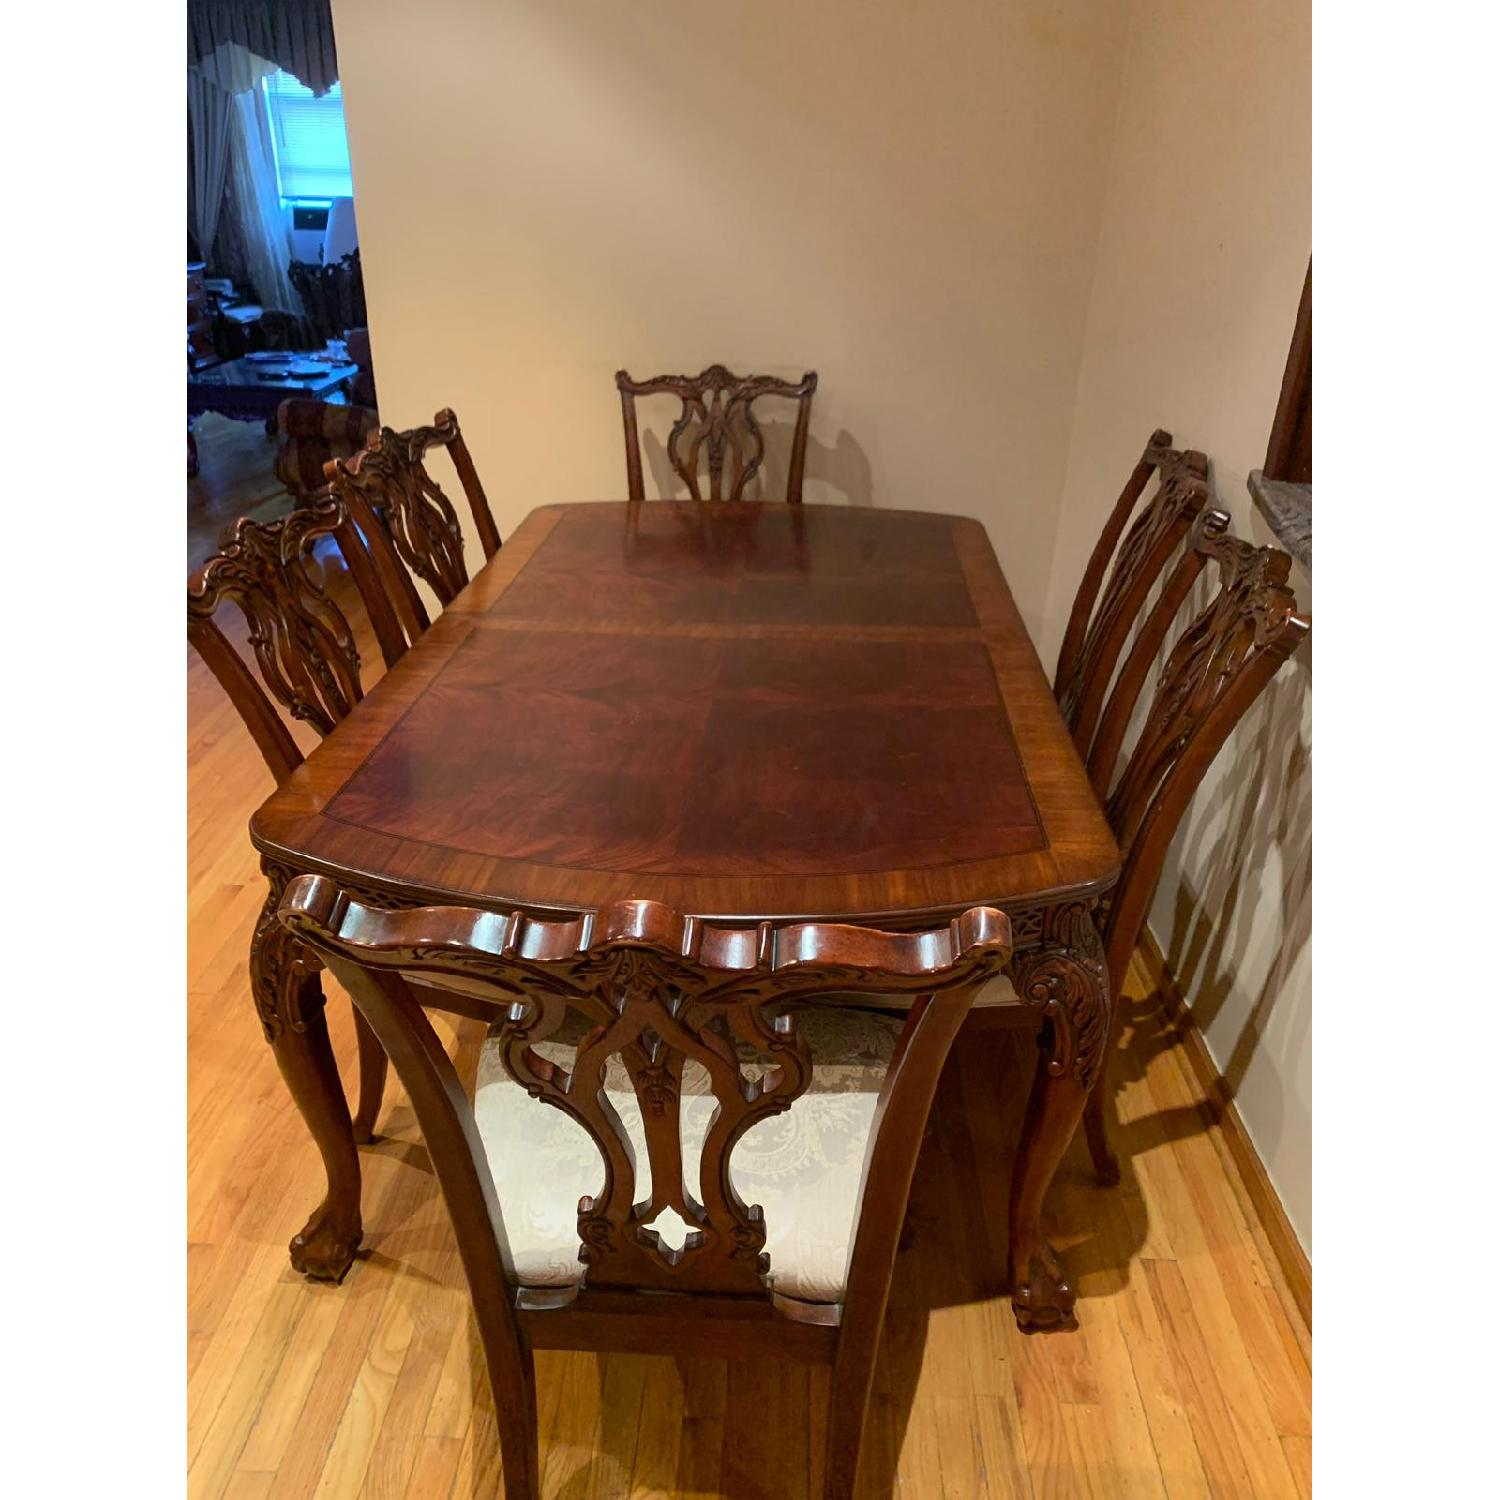 Traditional Wood Dining Table w/ 8 Chairs - image-1